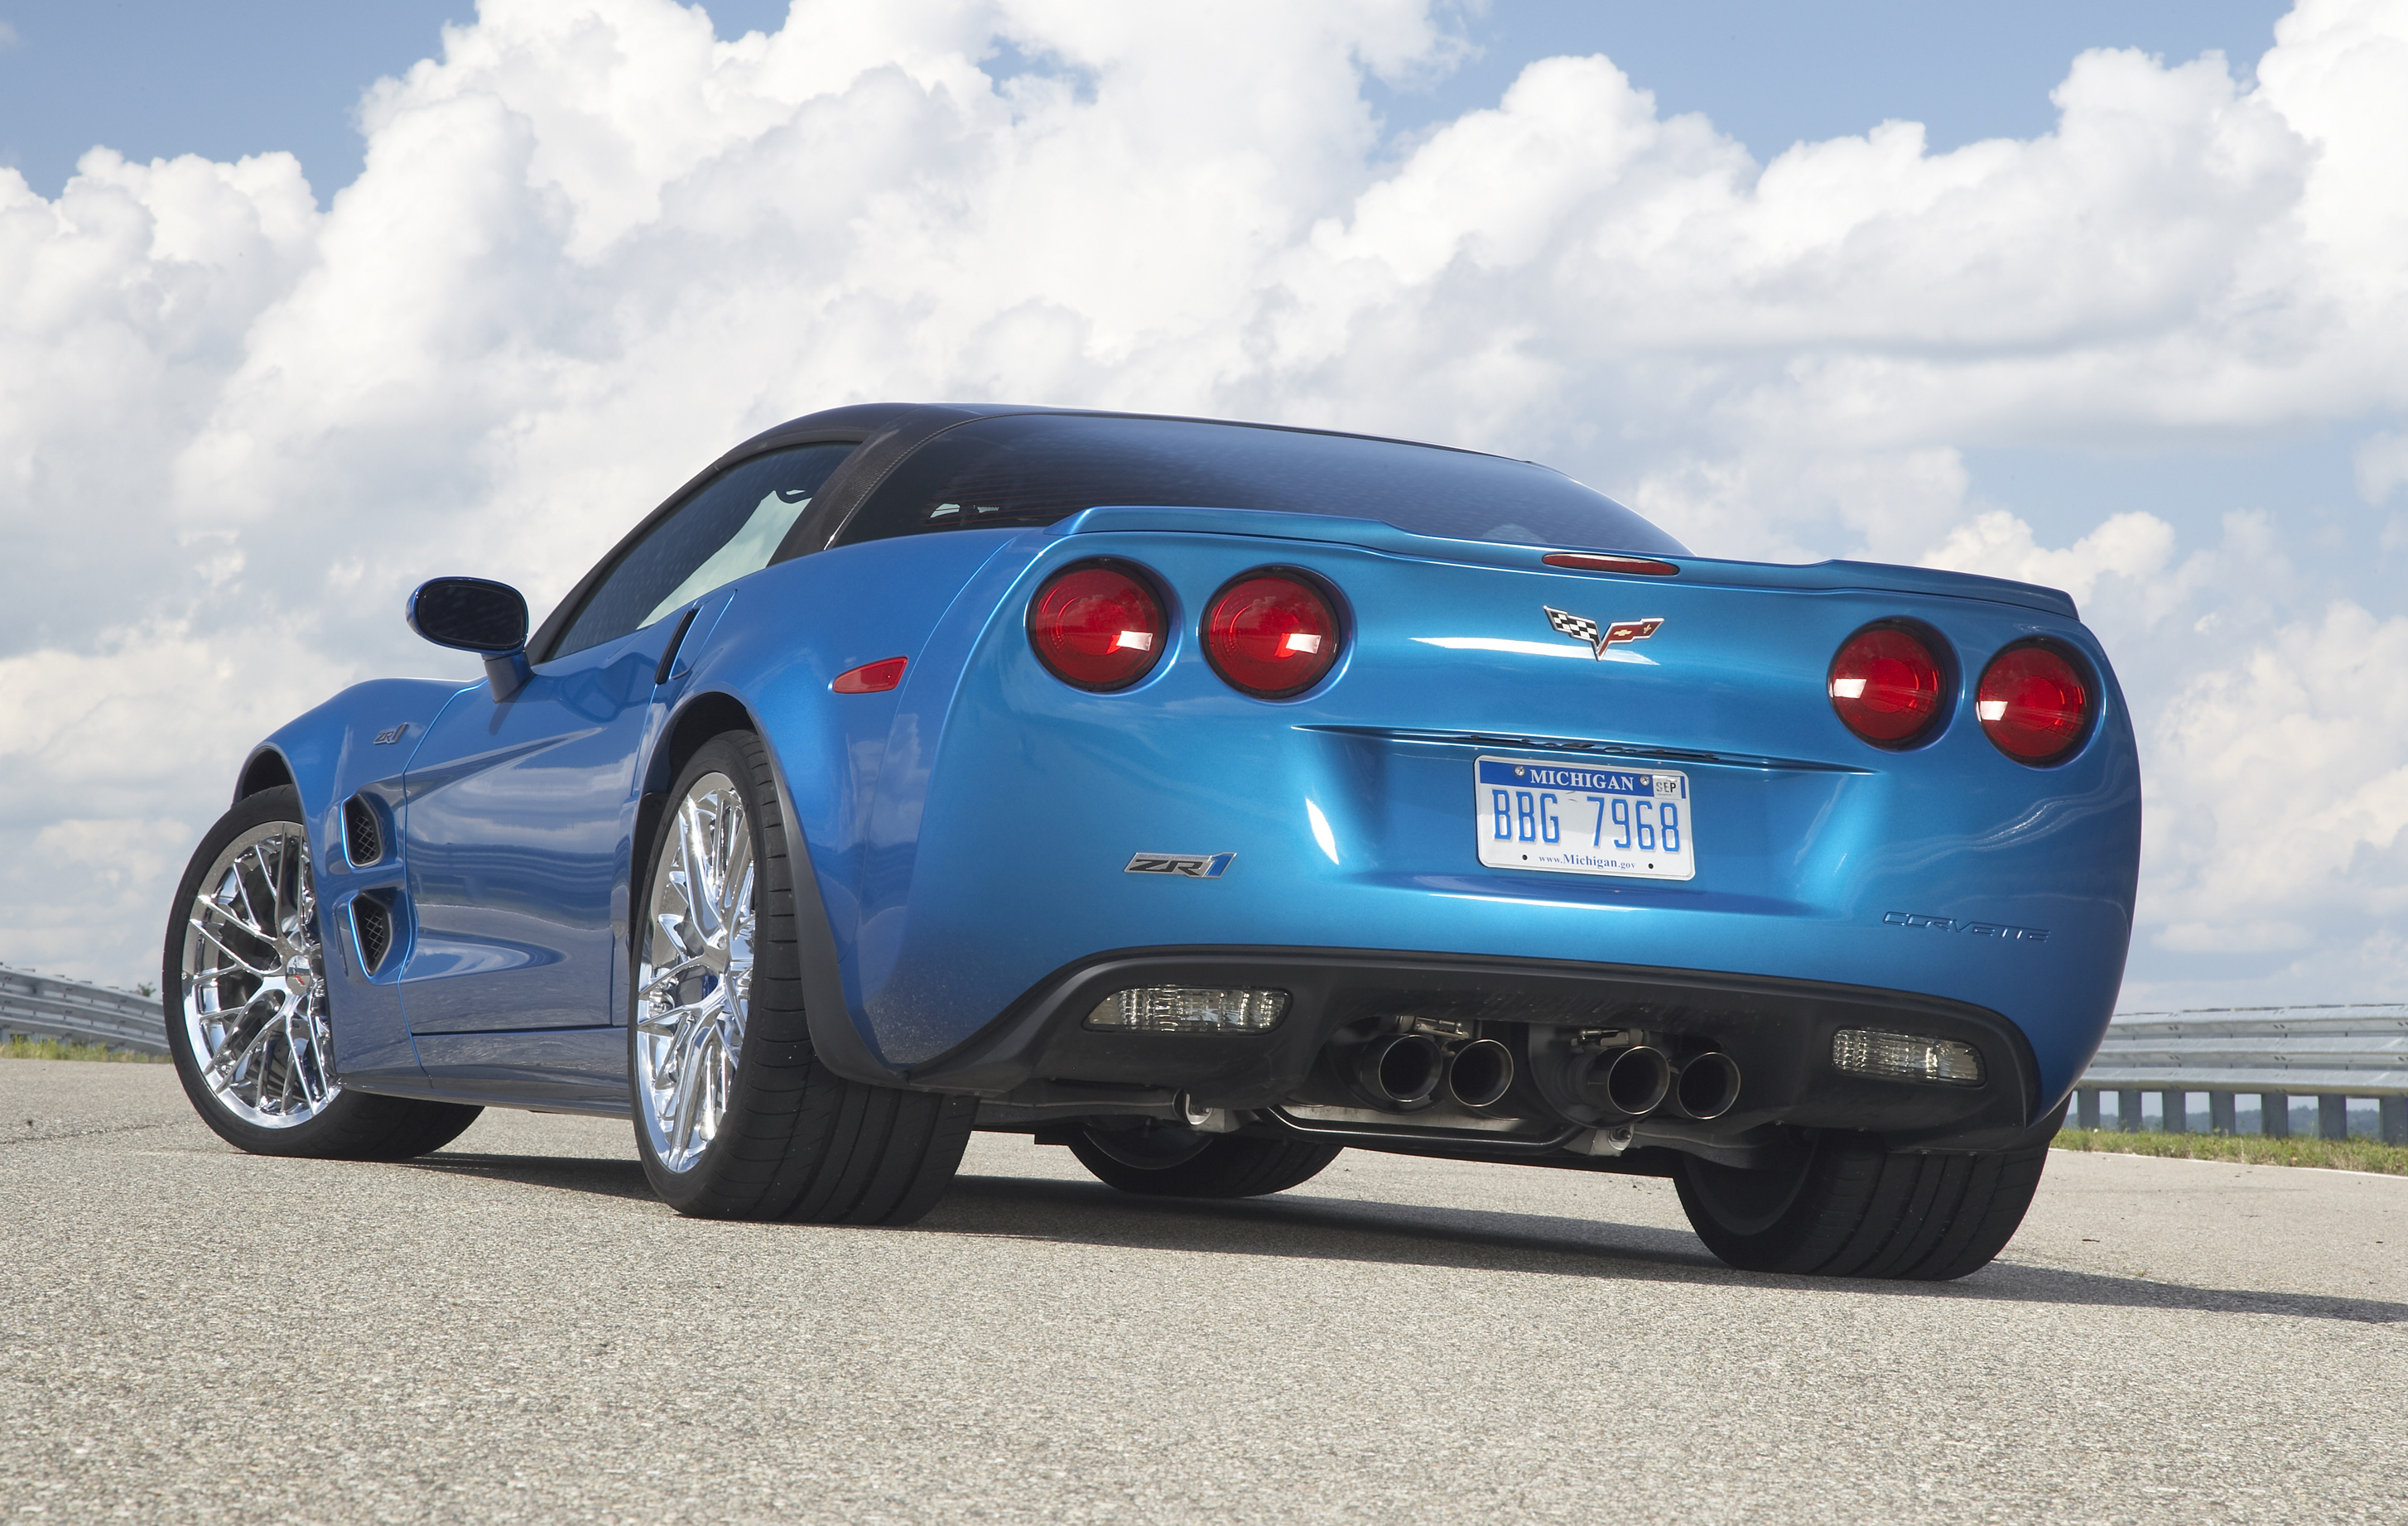 chevrolet_corvette_zr1__310 Modern Porsche 911 Gt2 Vs Corvette Zr1 Cars Trend